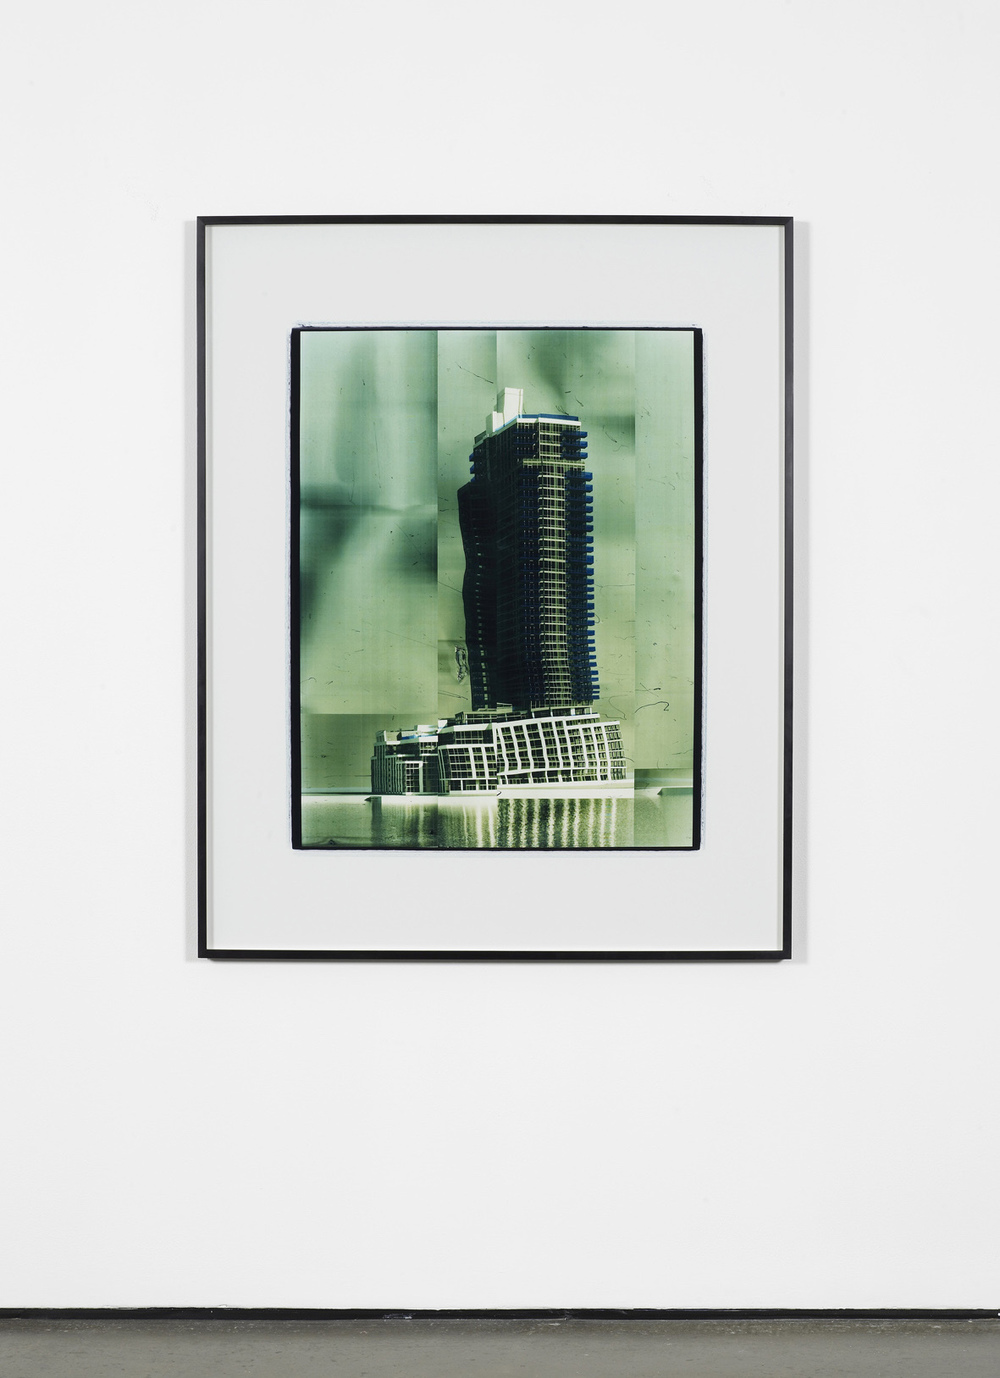 Nick Relph Paris 2016 C-print 127 x 101.6 cm / 50 x 40 in